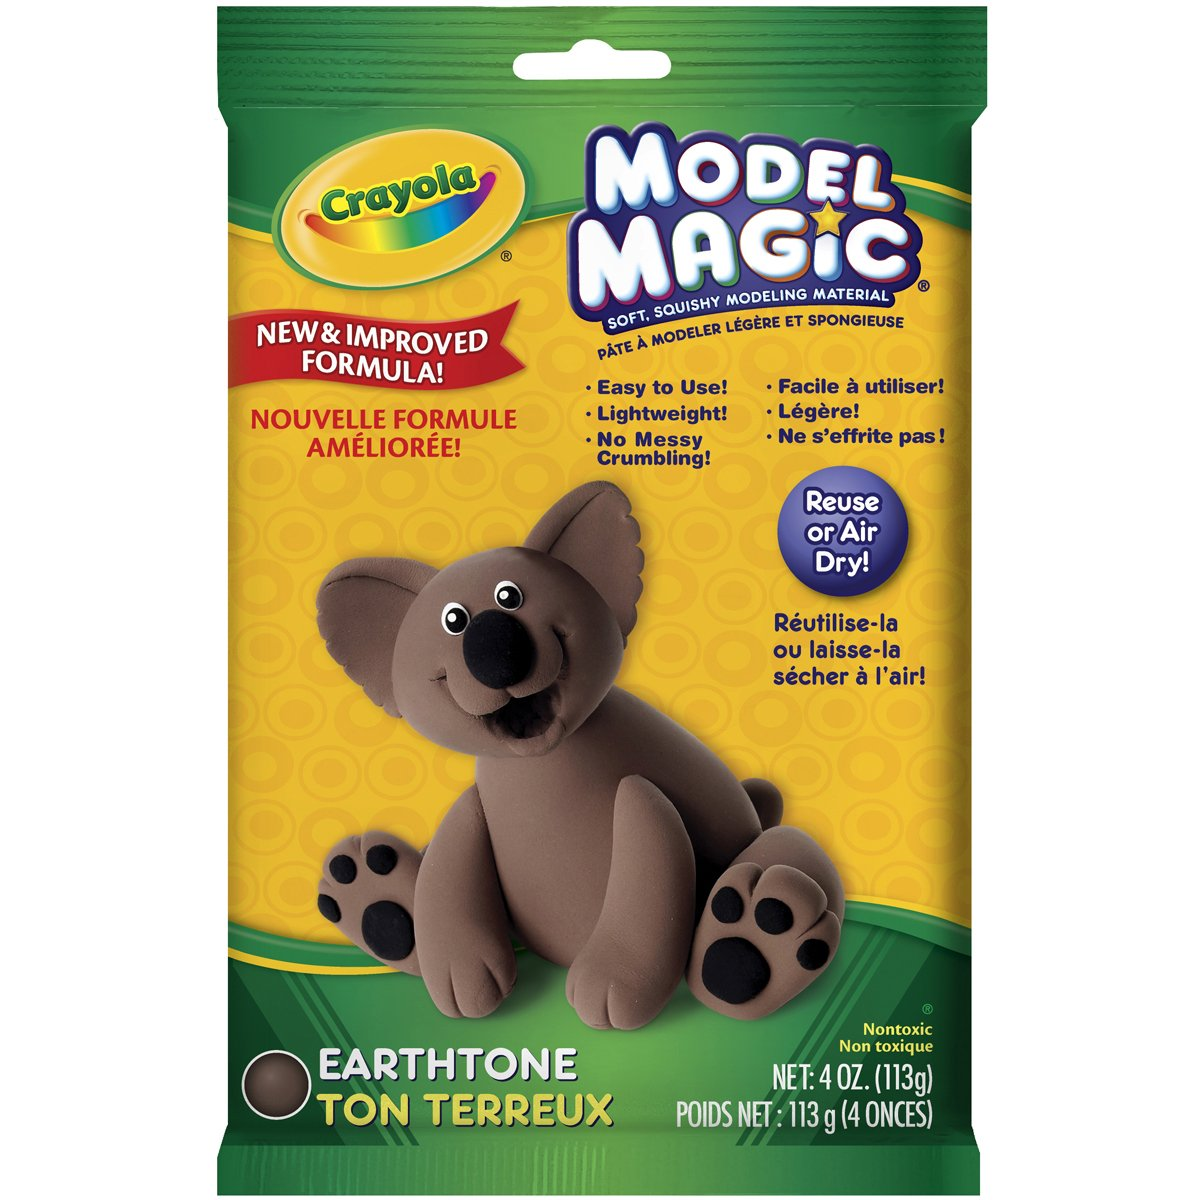 Model Magic Modeling Material - 1 Each - Earth Tone (cyo-574459)